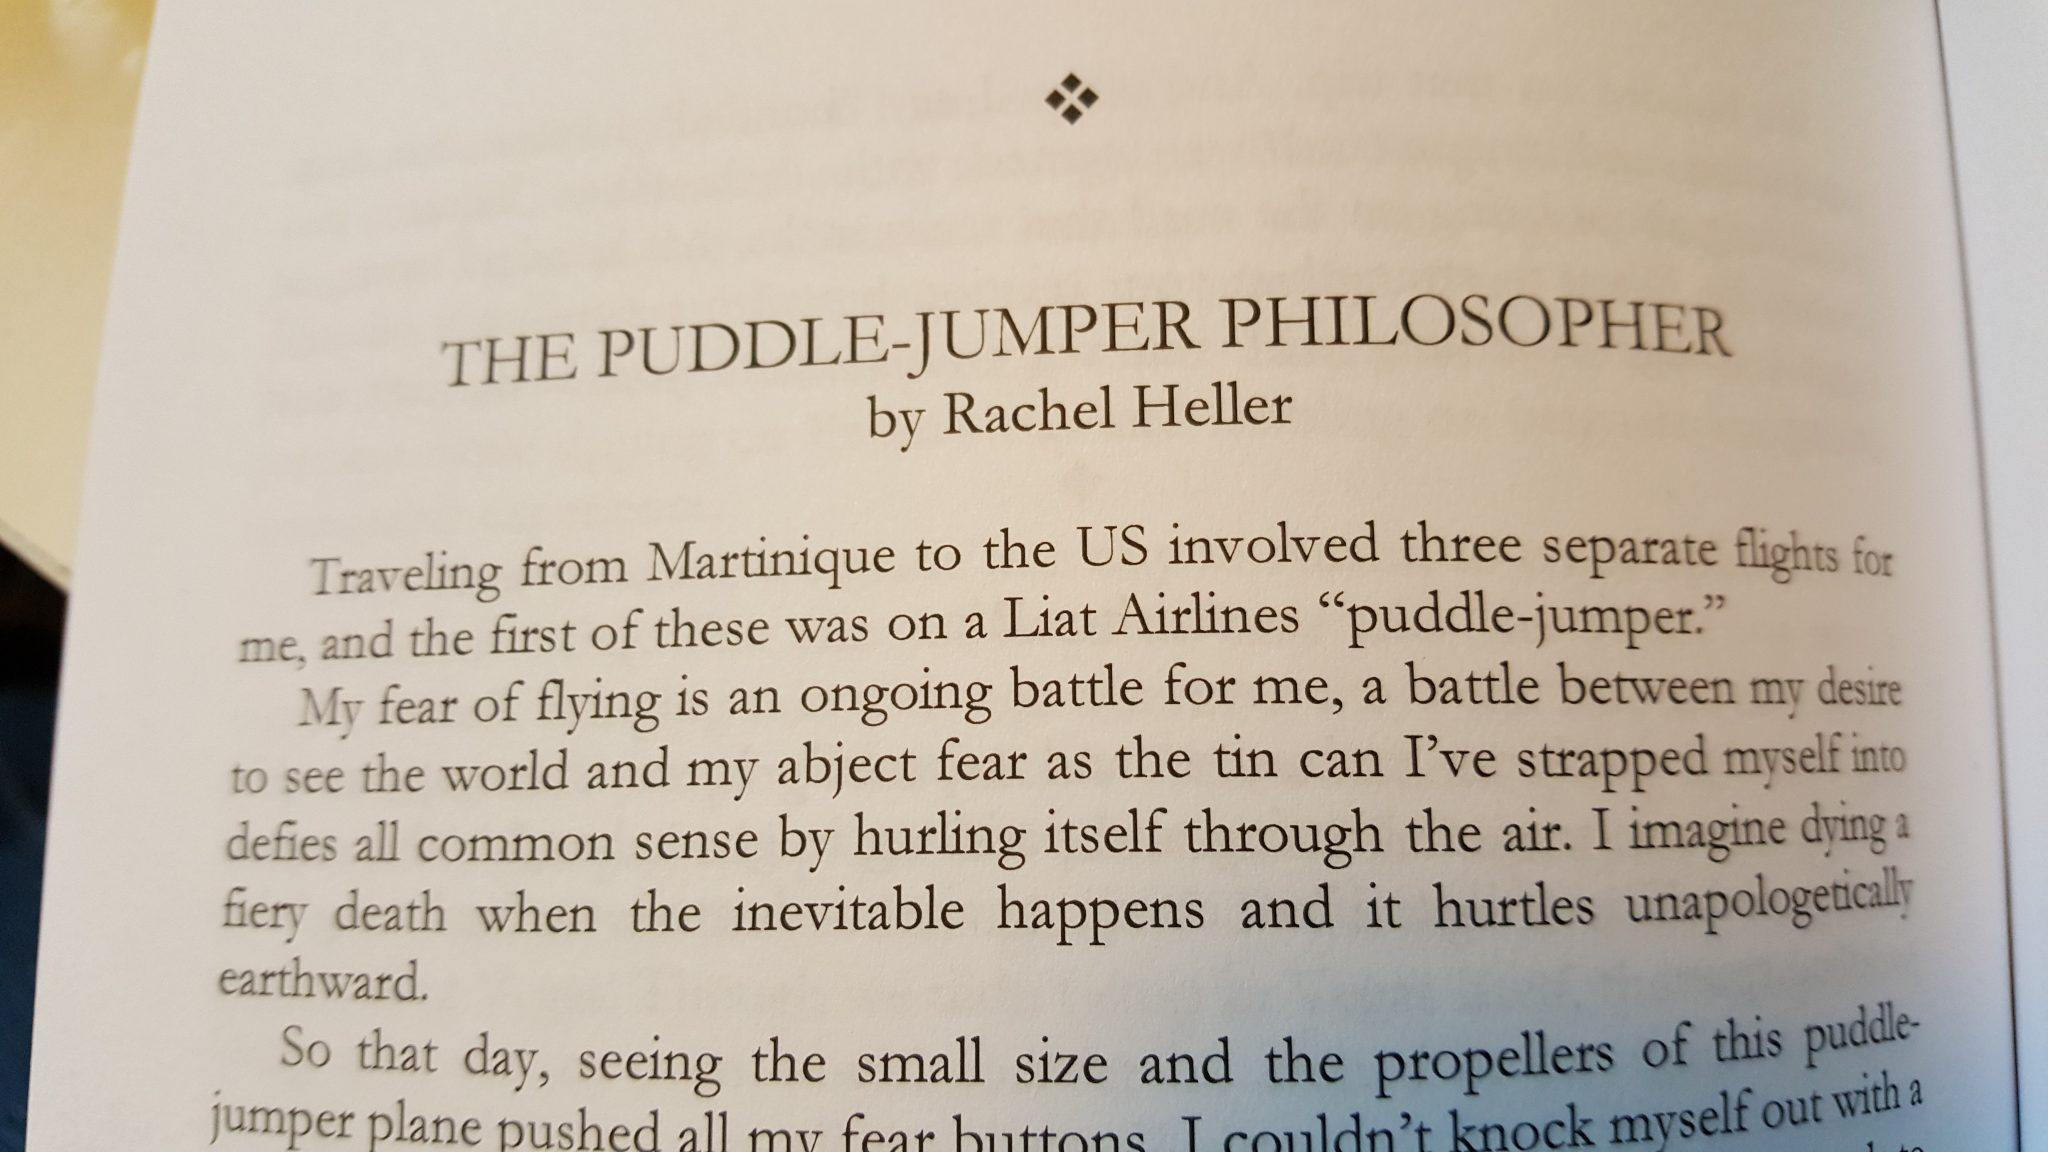 There it is! That's my story in print!